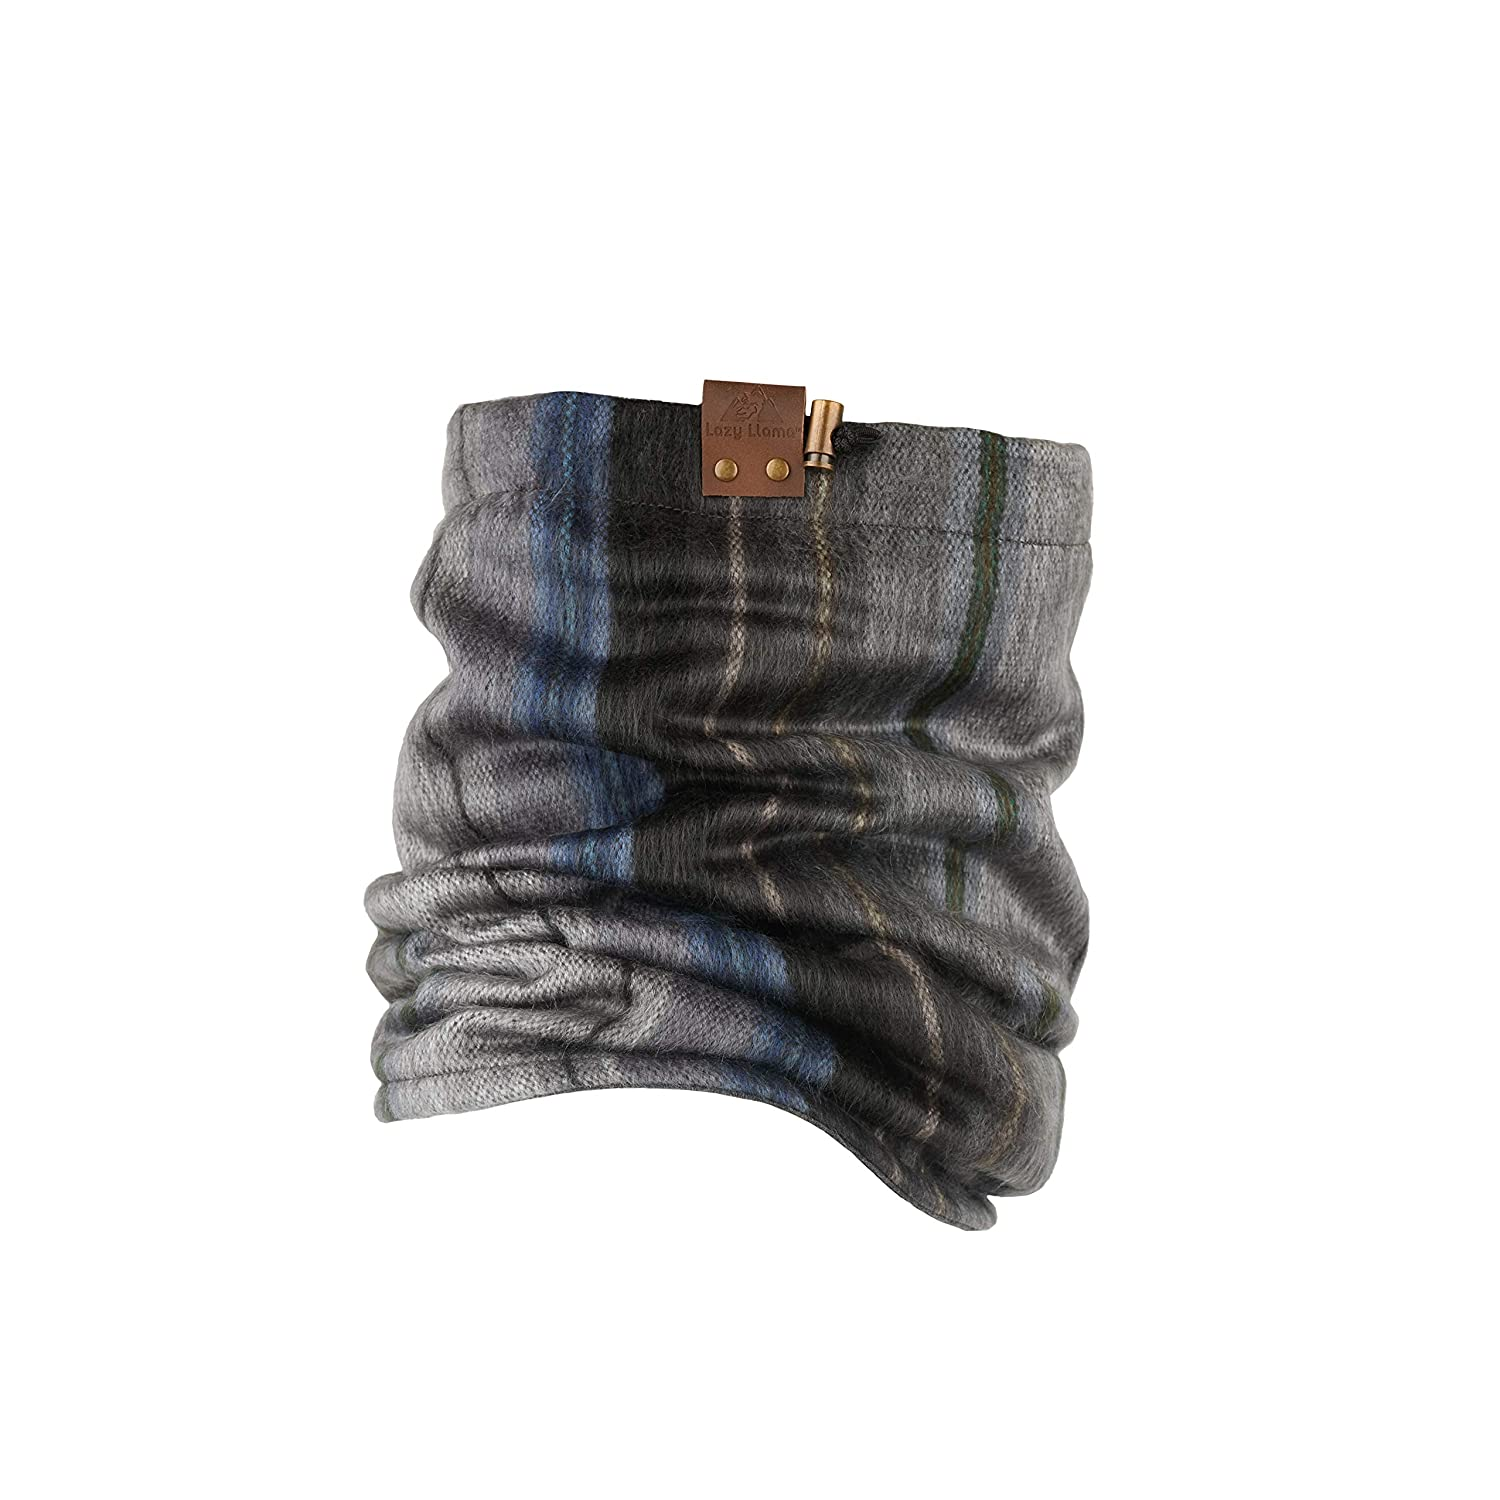 Woven Alpaca Limited Special Price Bamboo Neck Gaiter OFFicial